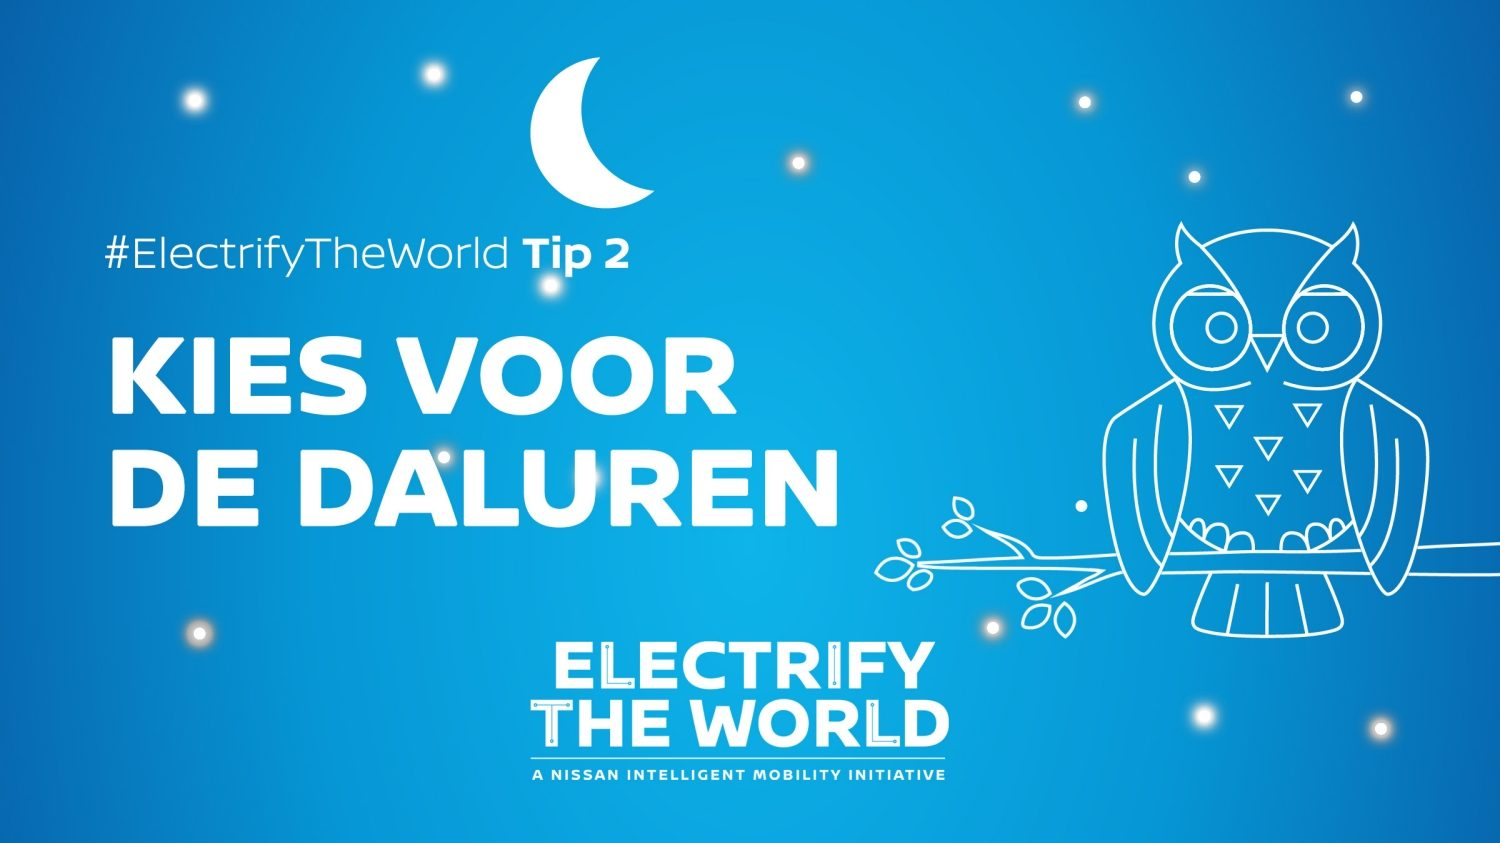 Electrify the World - daluren